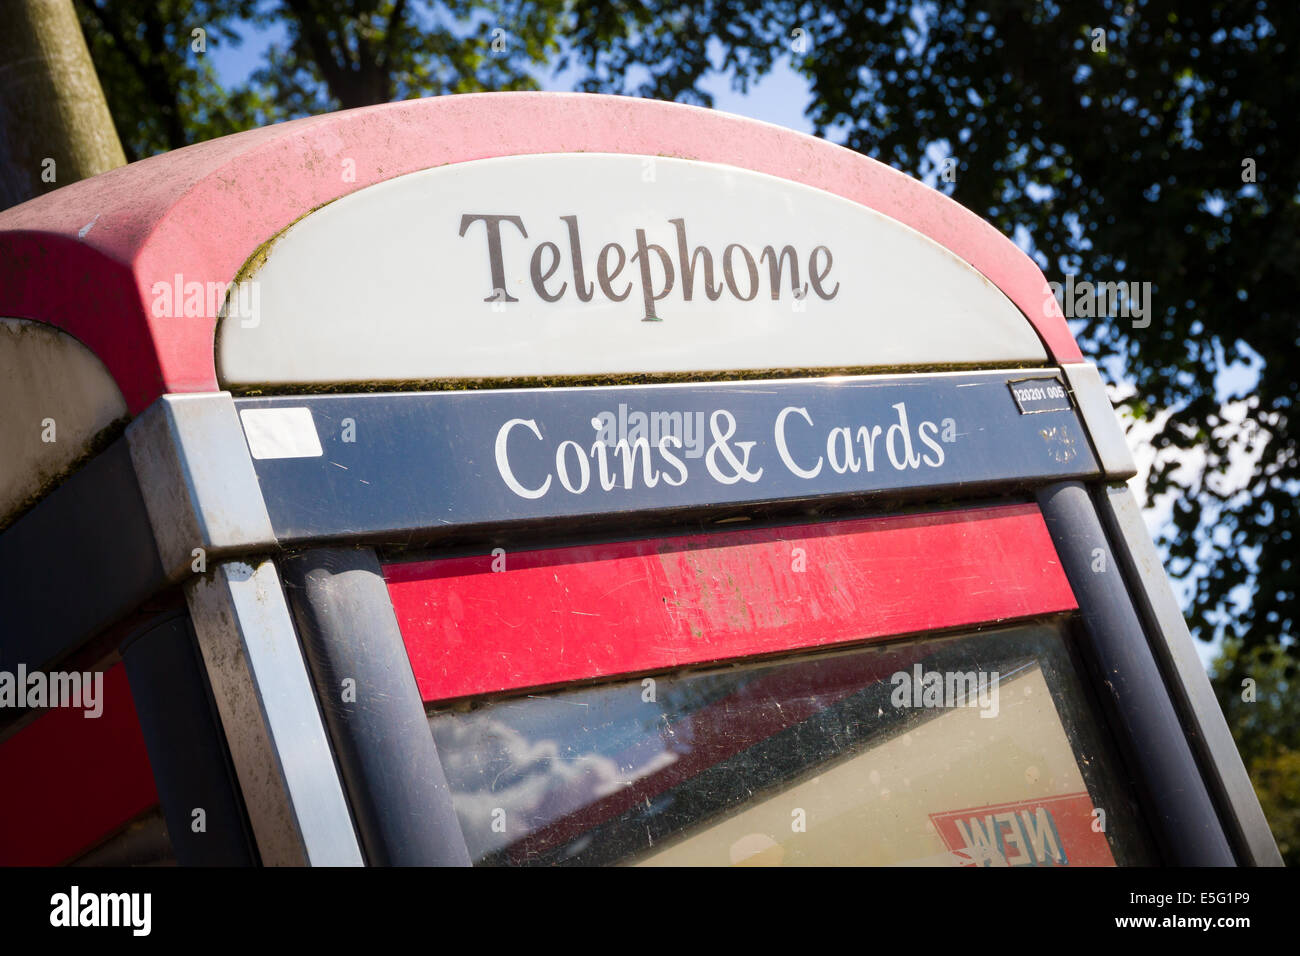 BT telephone box in England - Stock Image